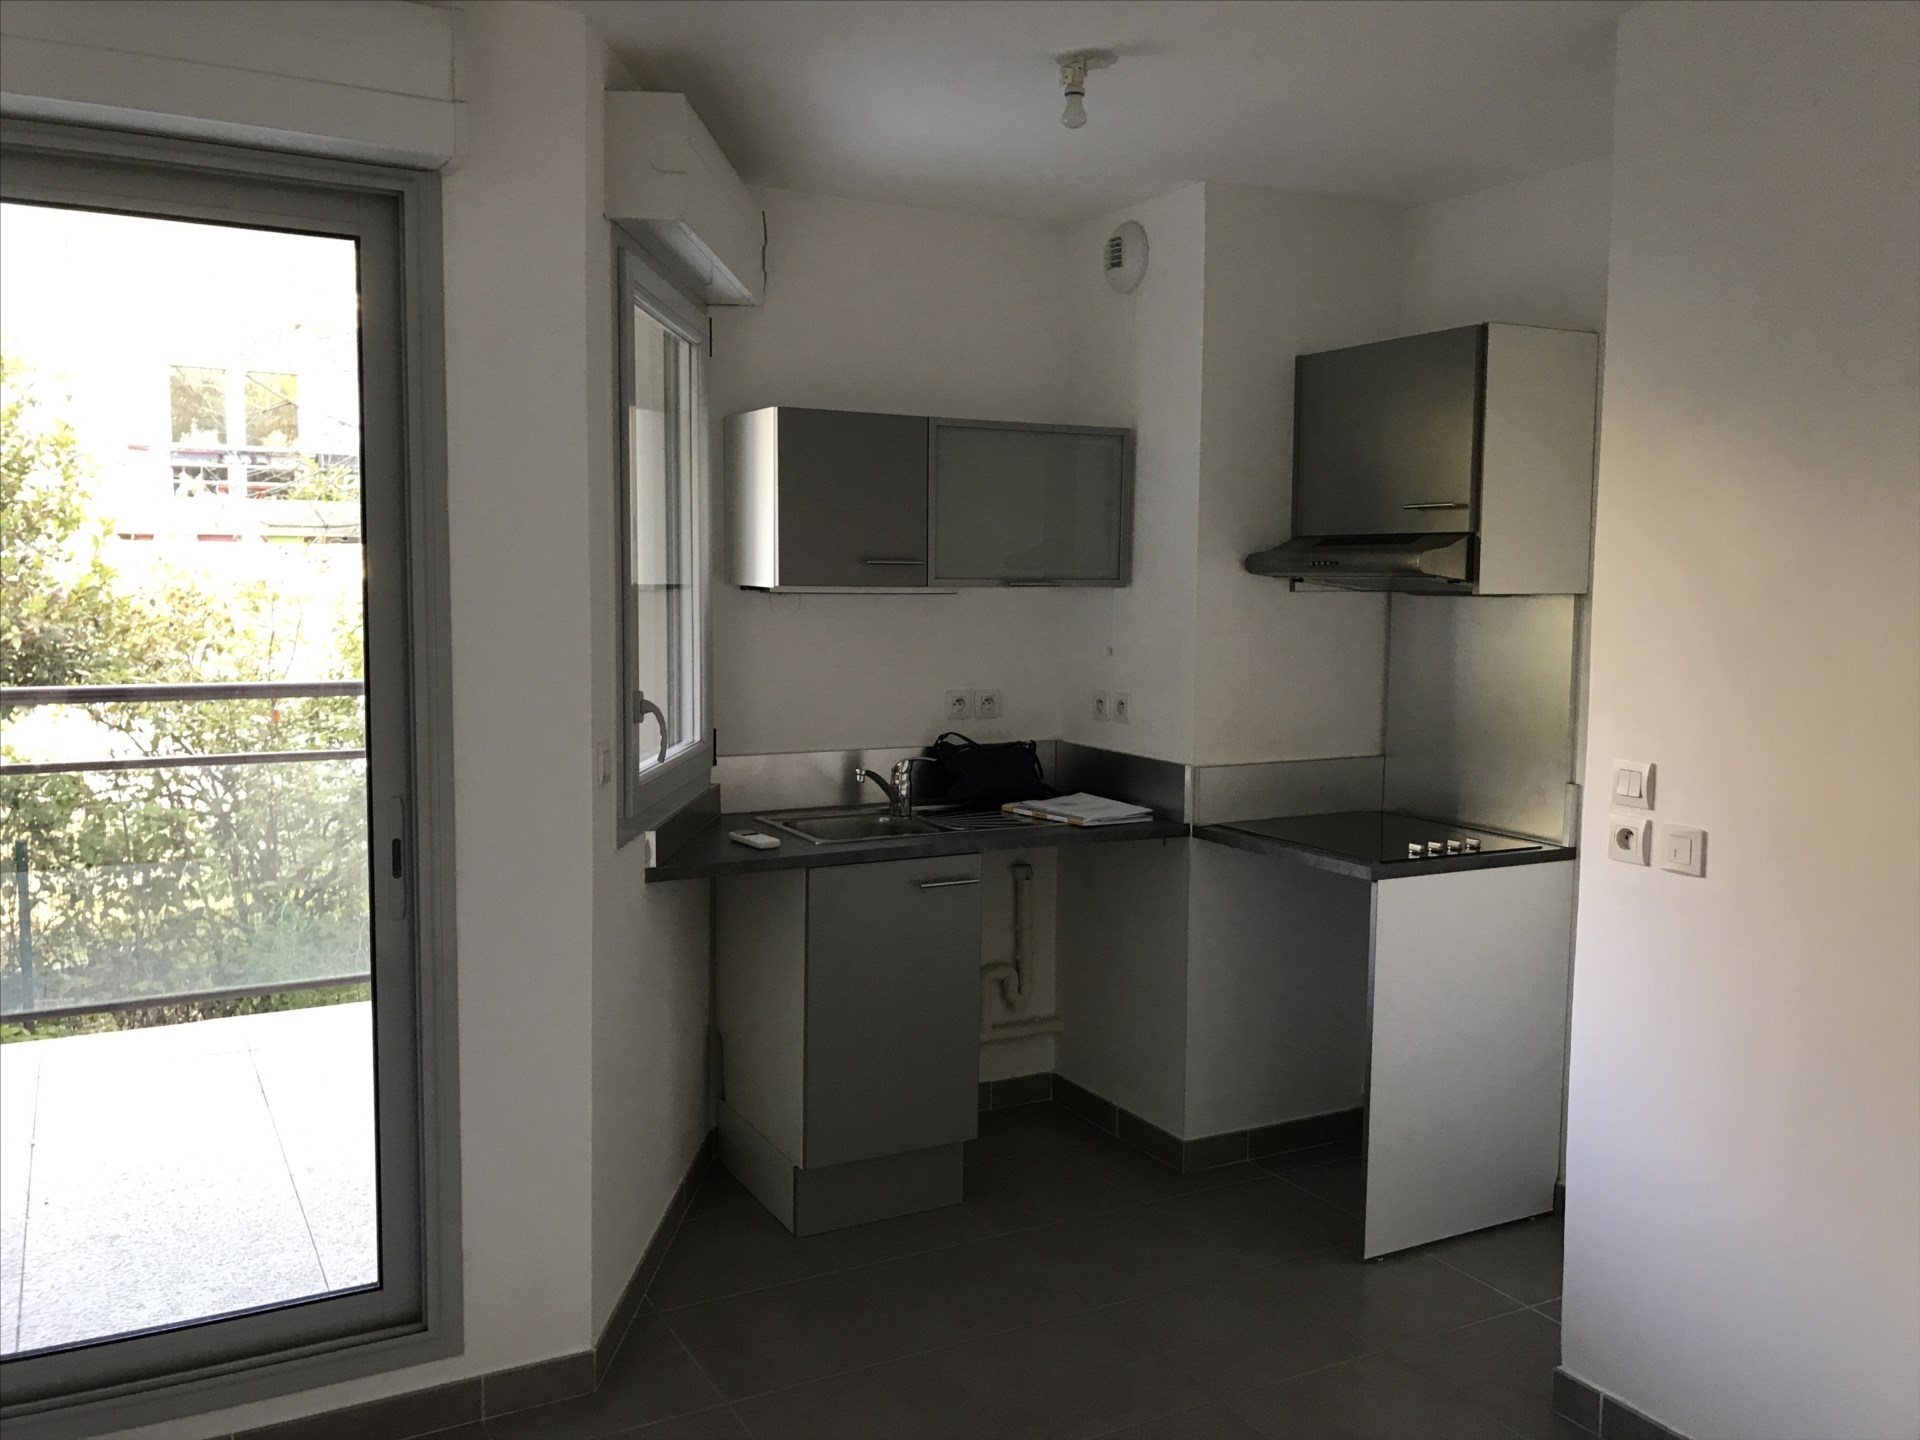 Location Appartement MONTPELLIER Mandat : 0149